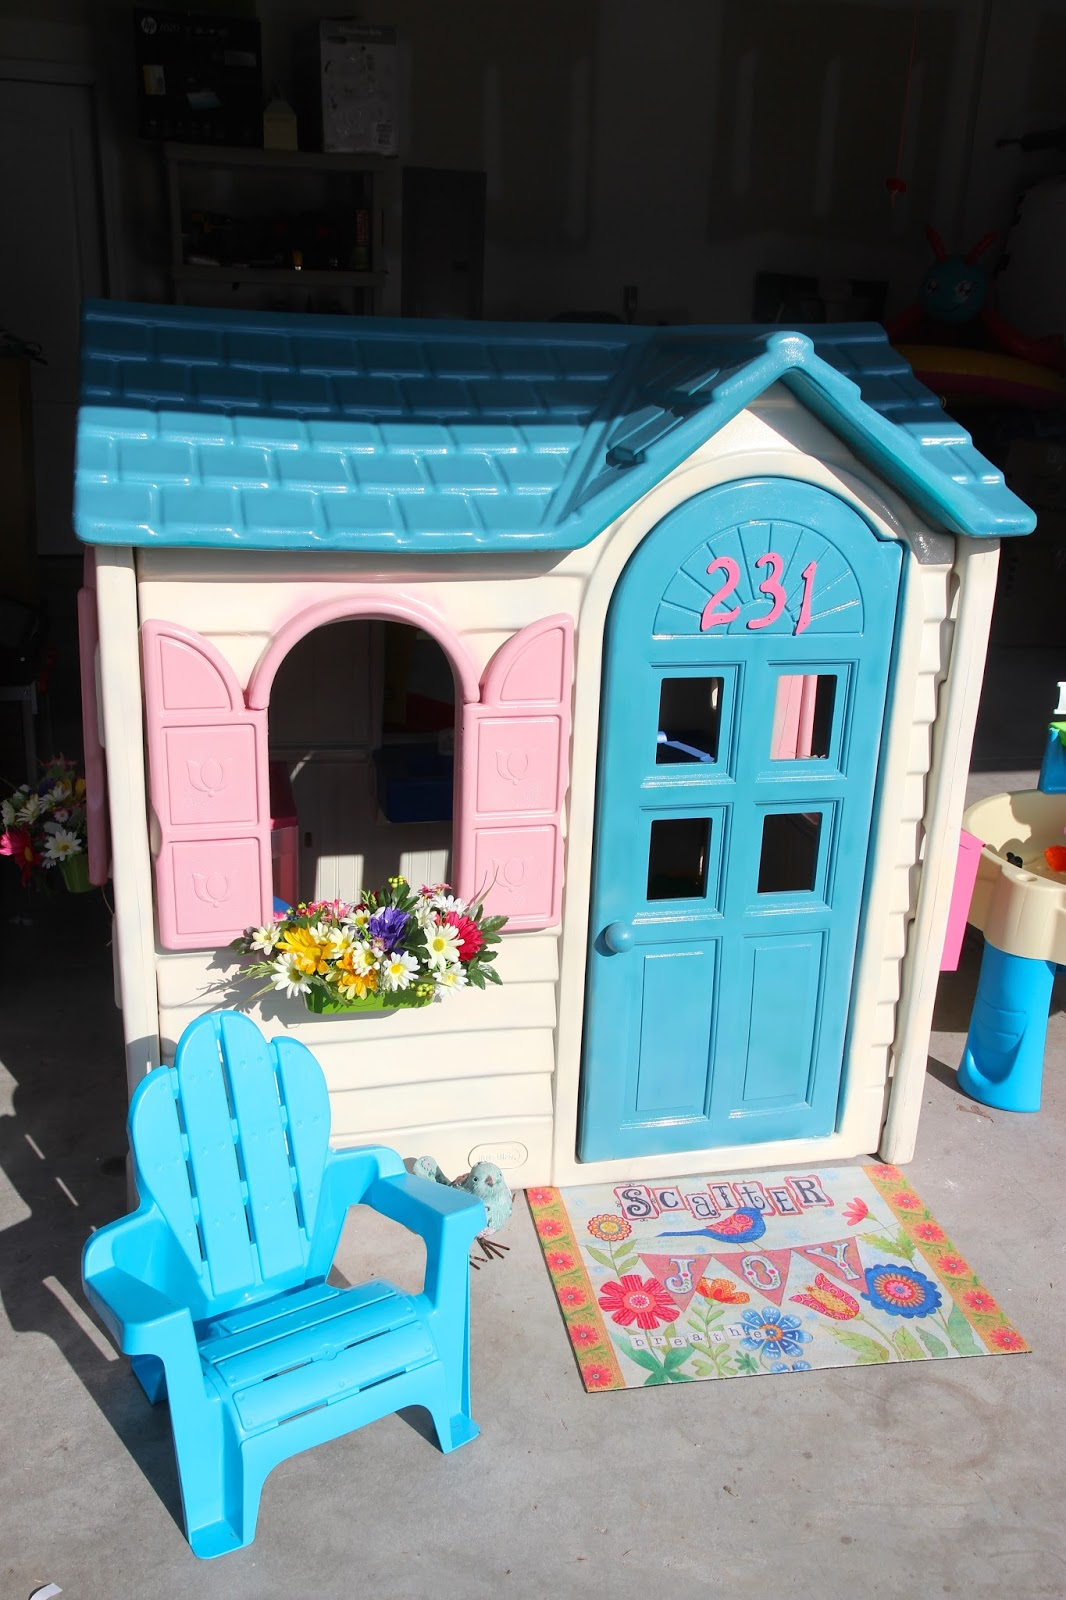 It Was A Well Loved Outdoor Playhouse One Of My Neighbors Sold Me For 35 In Good Structural Condition And Just Showed Signs Being Enjoyed